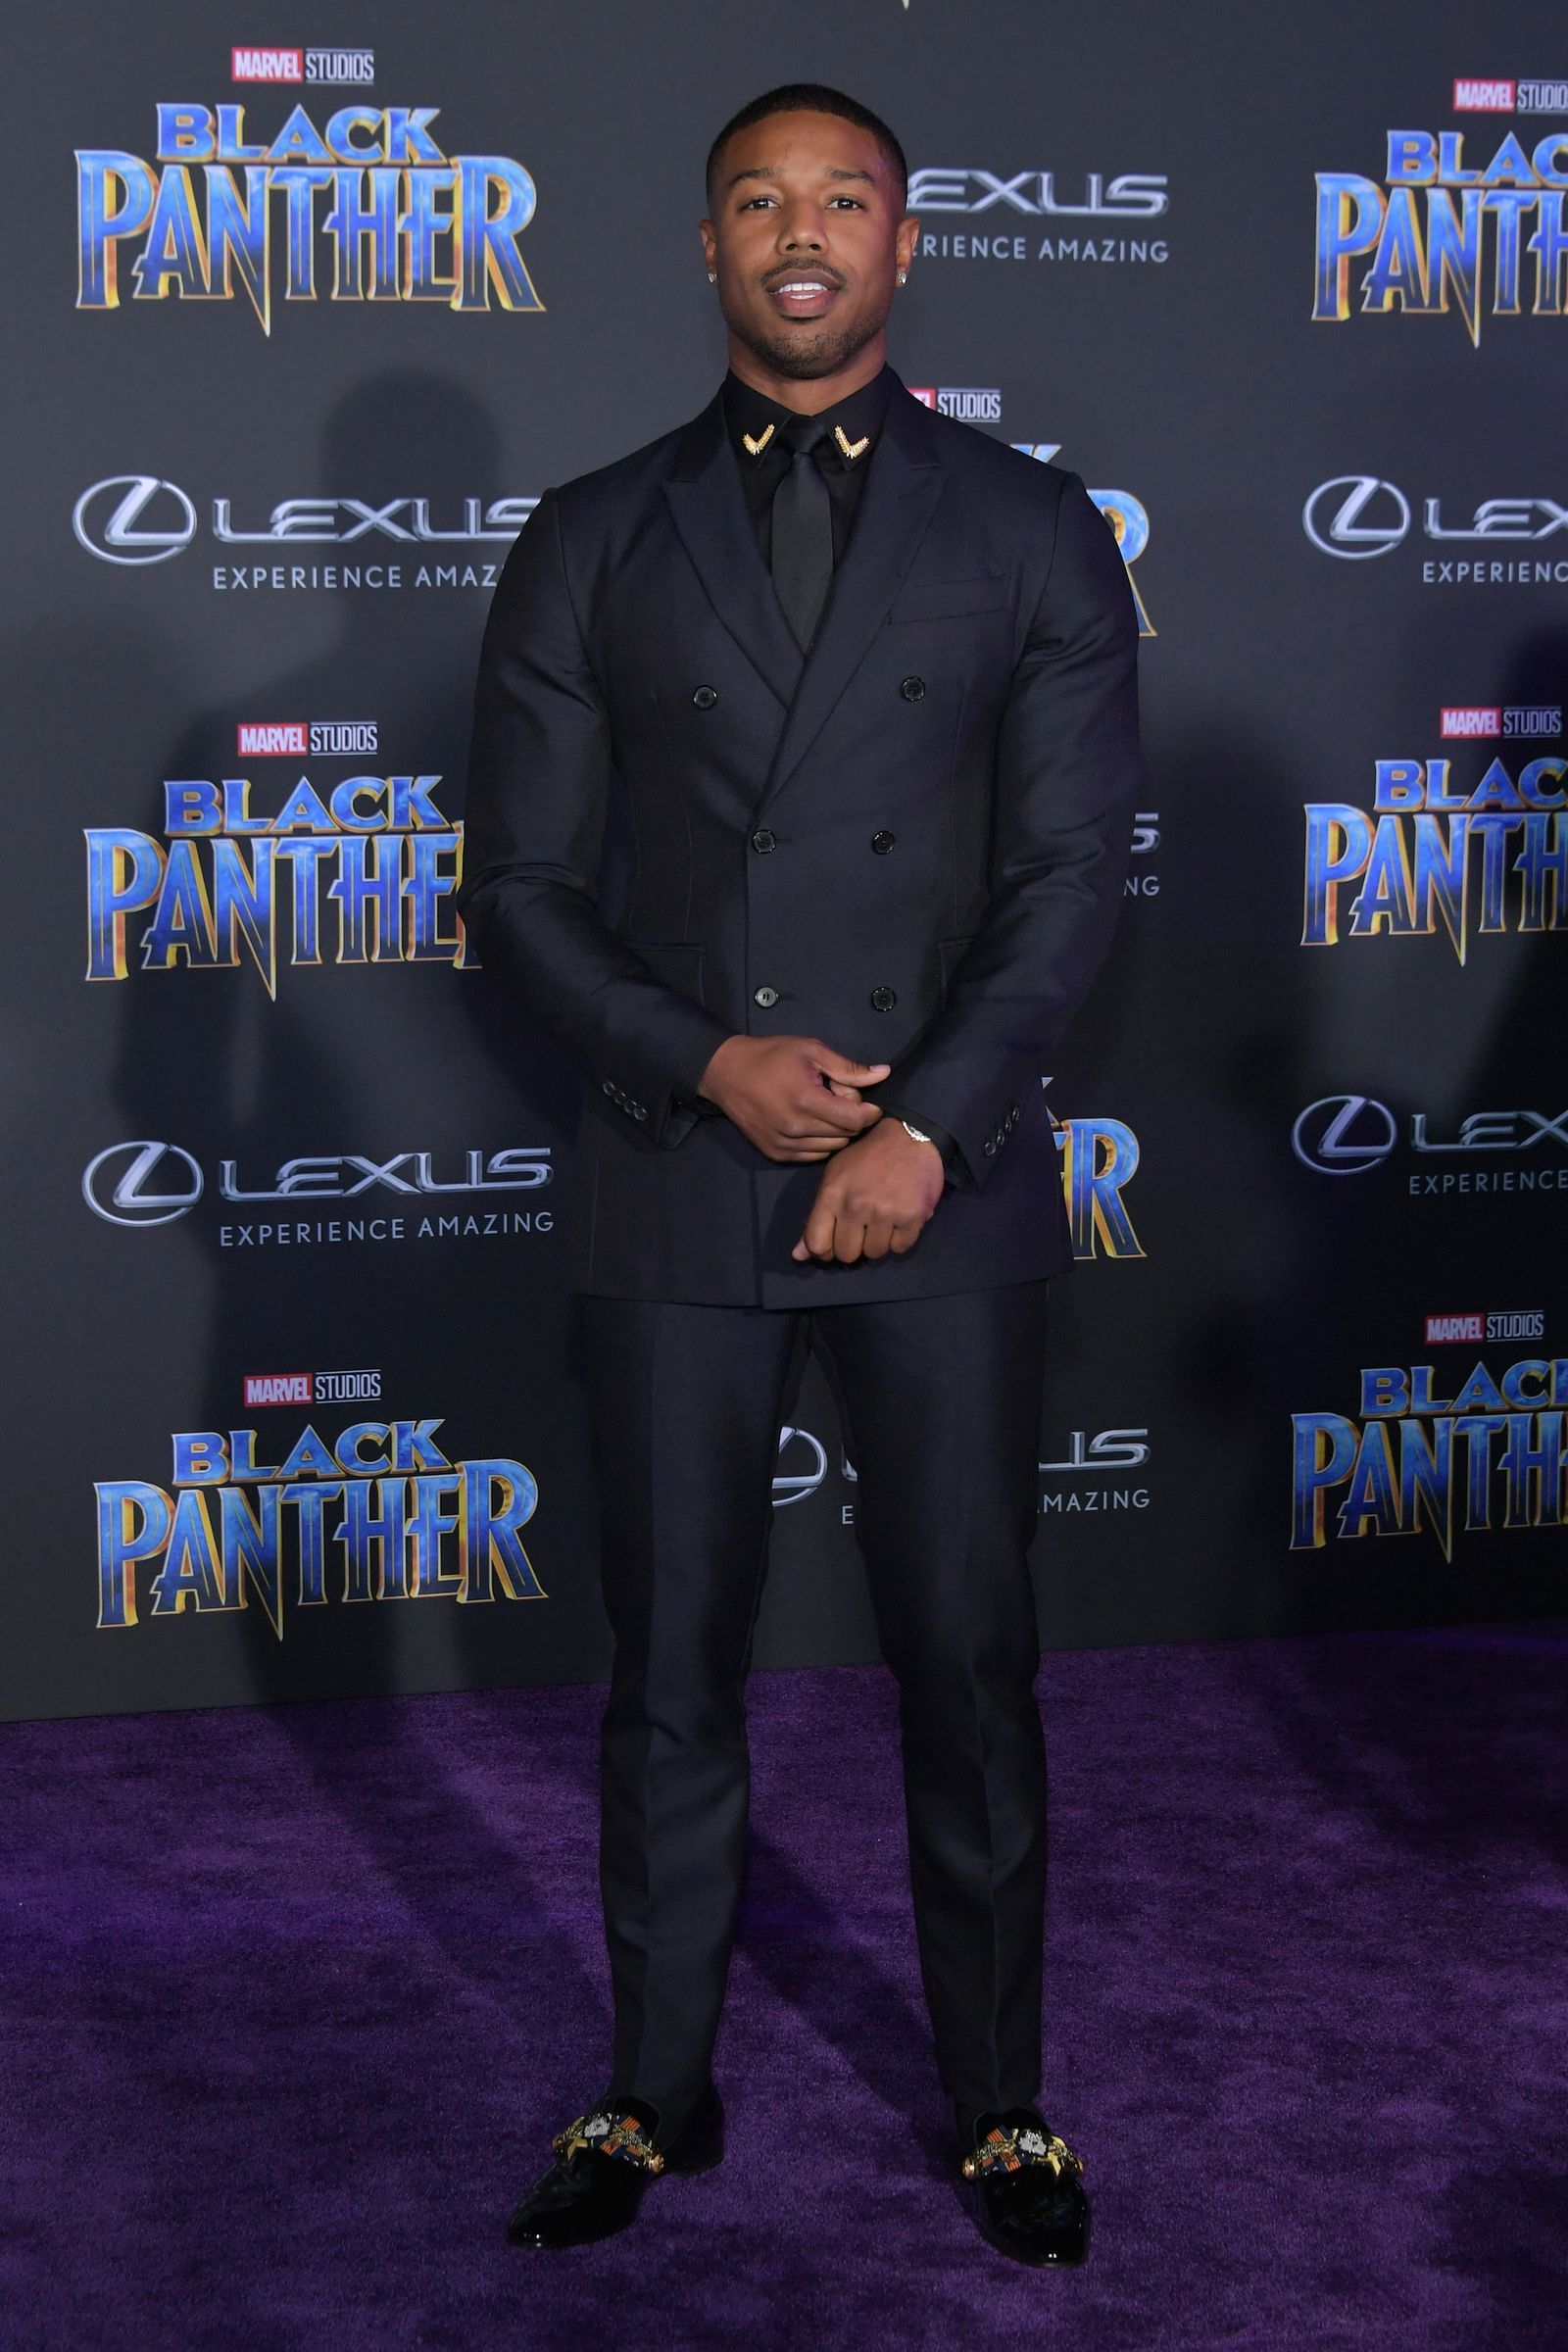 f47e30c7486 Everyone At The 'Black Panther' Premiere Looked Like Royalty | Red ...